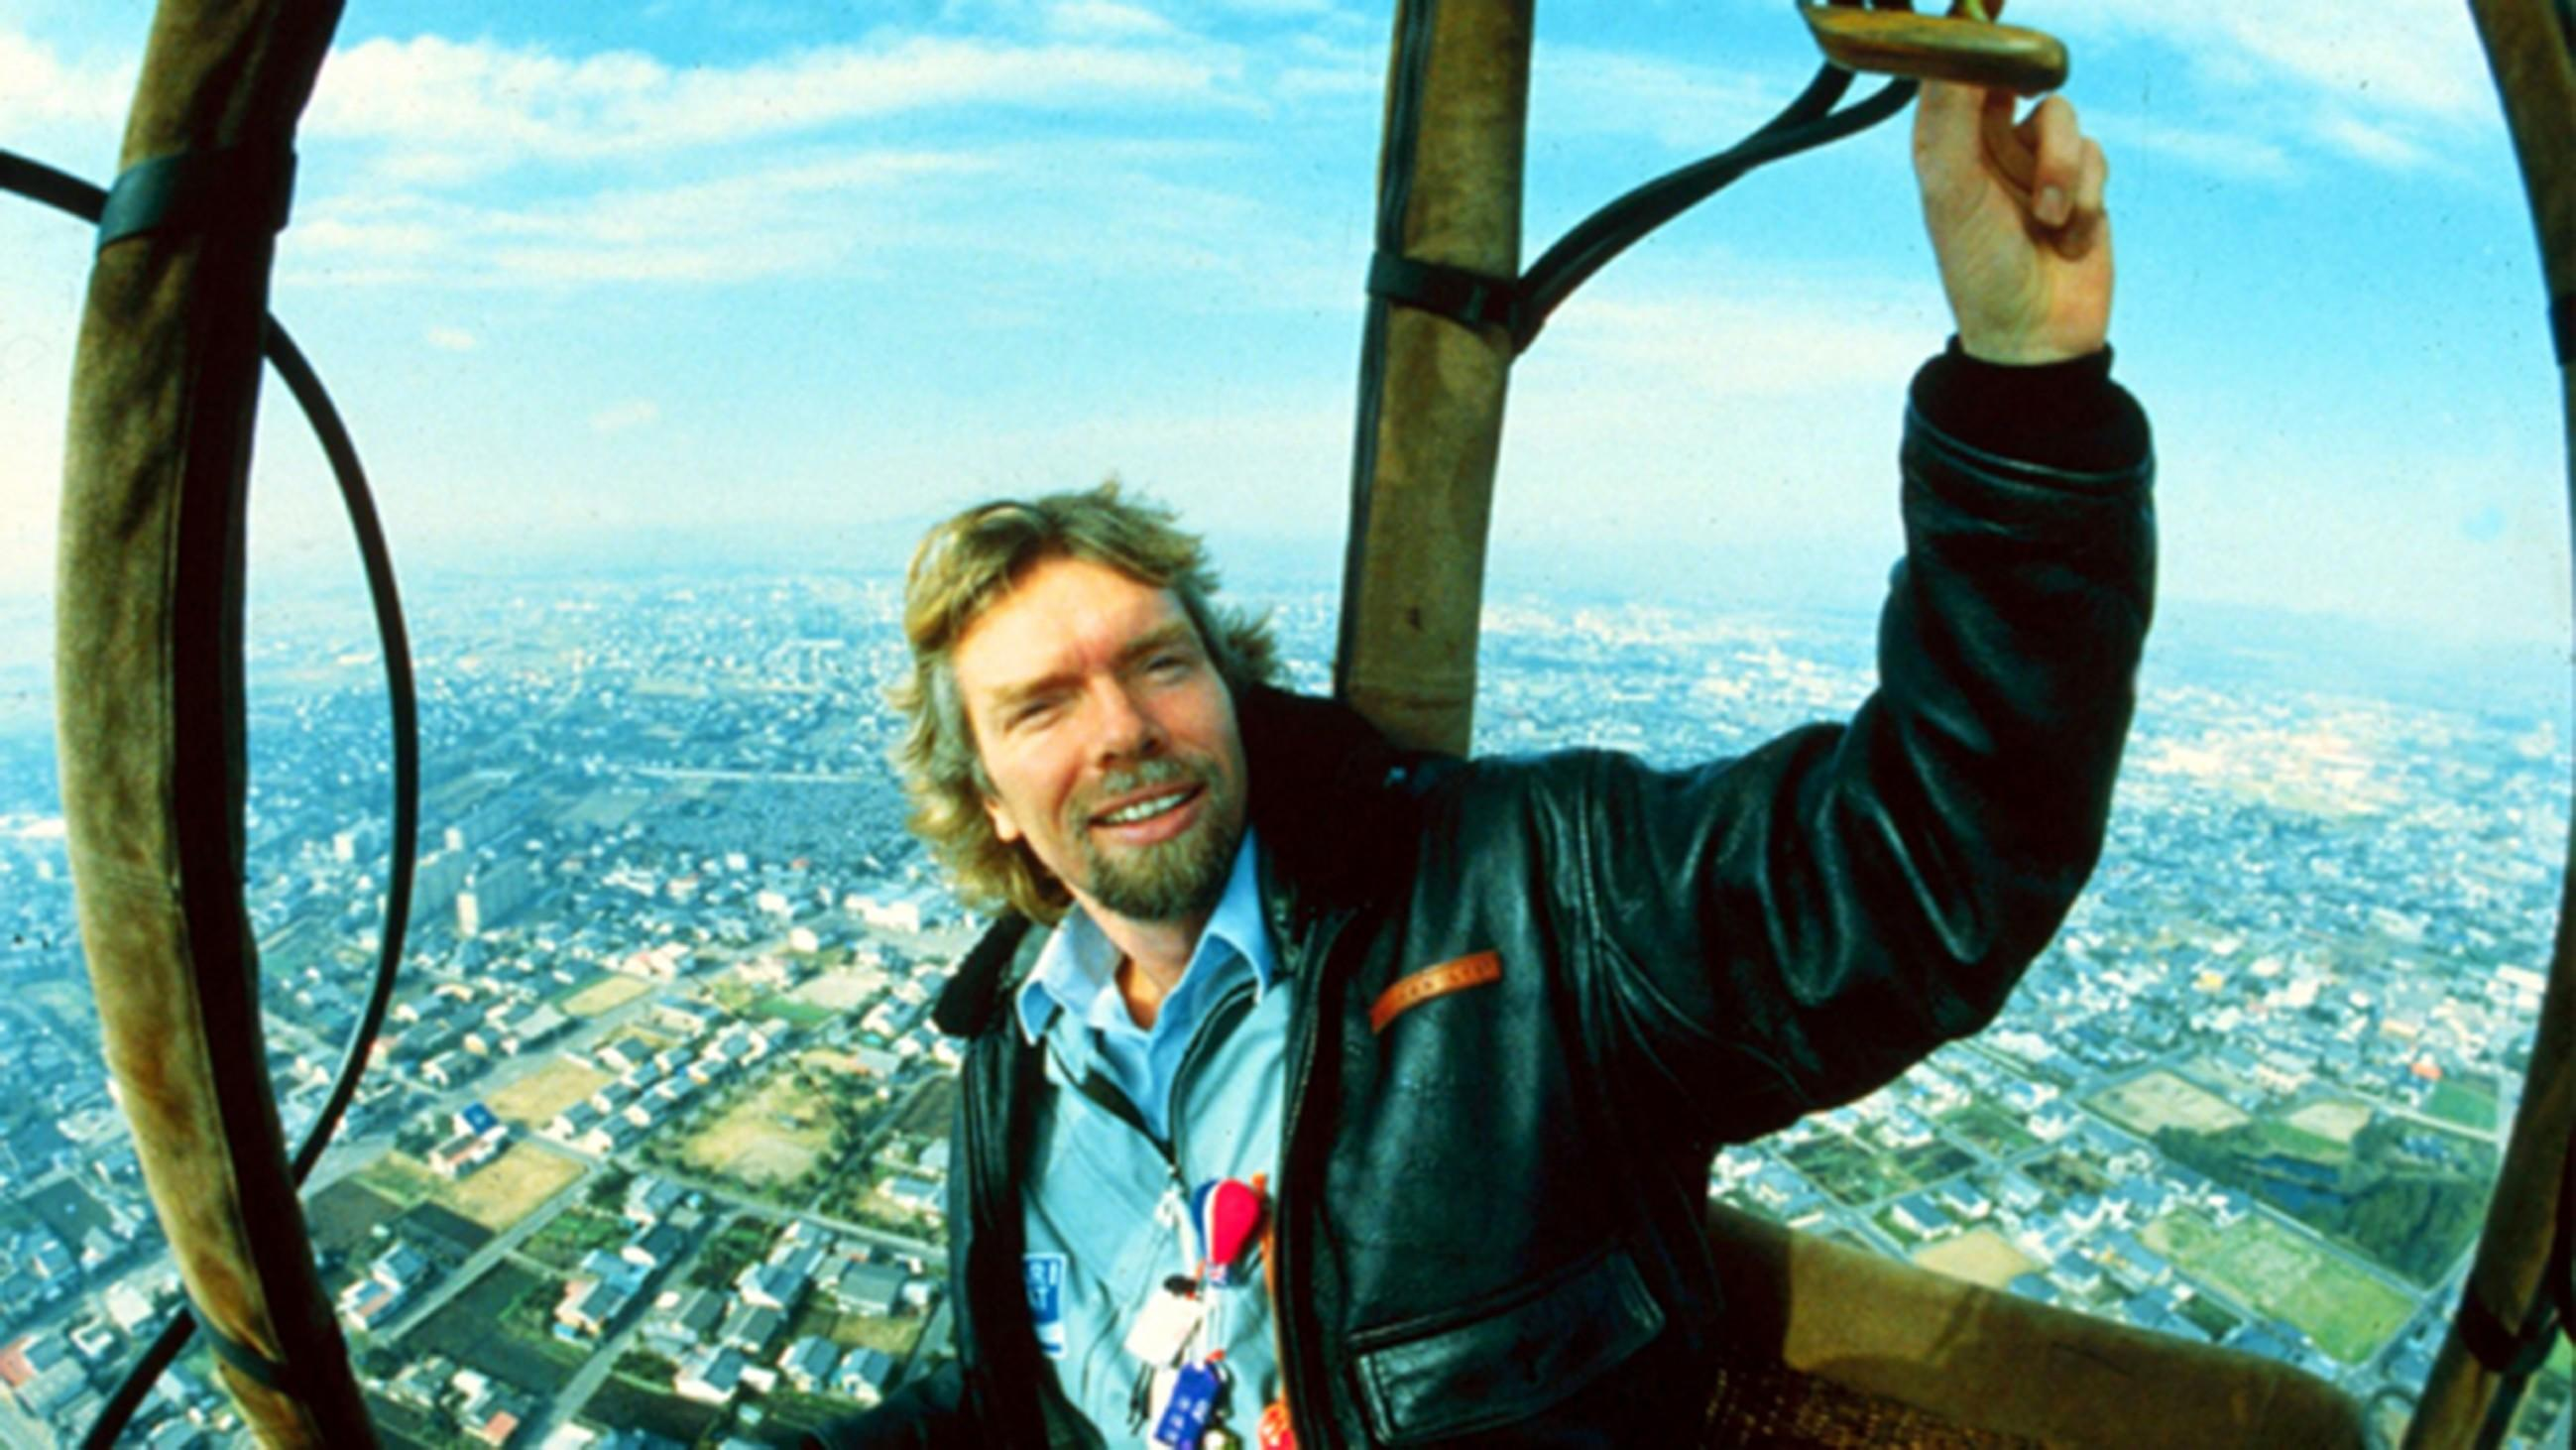 Richard Branson - Don't Look Down